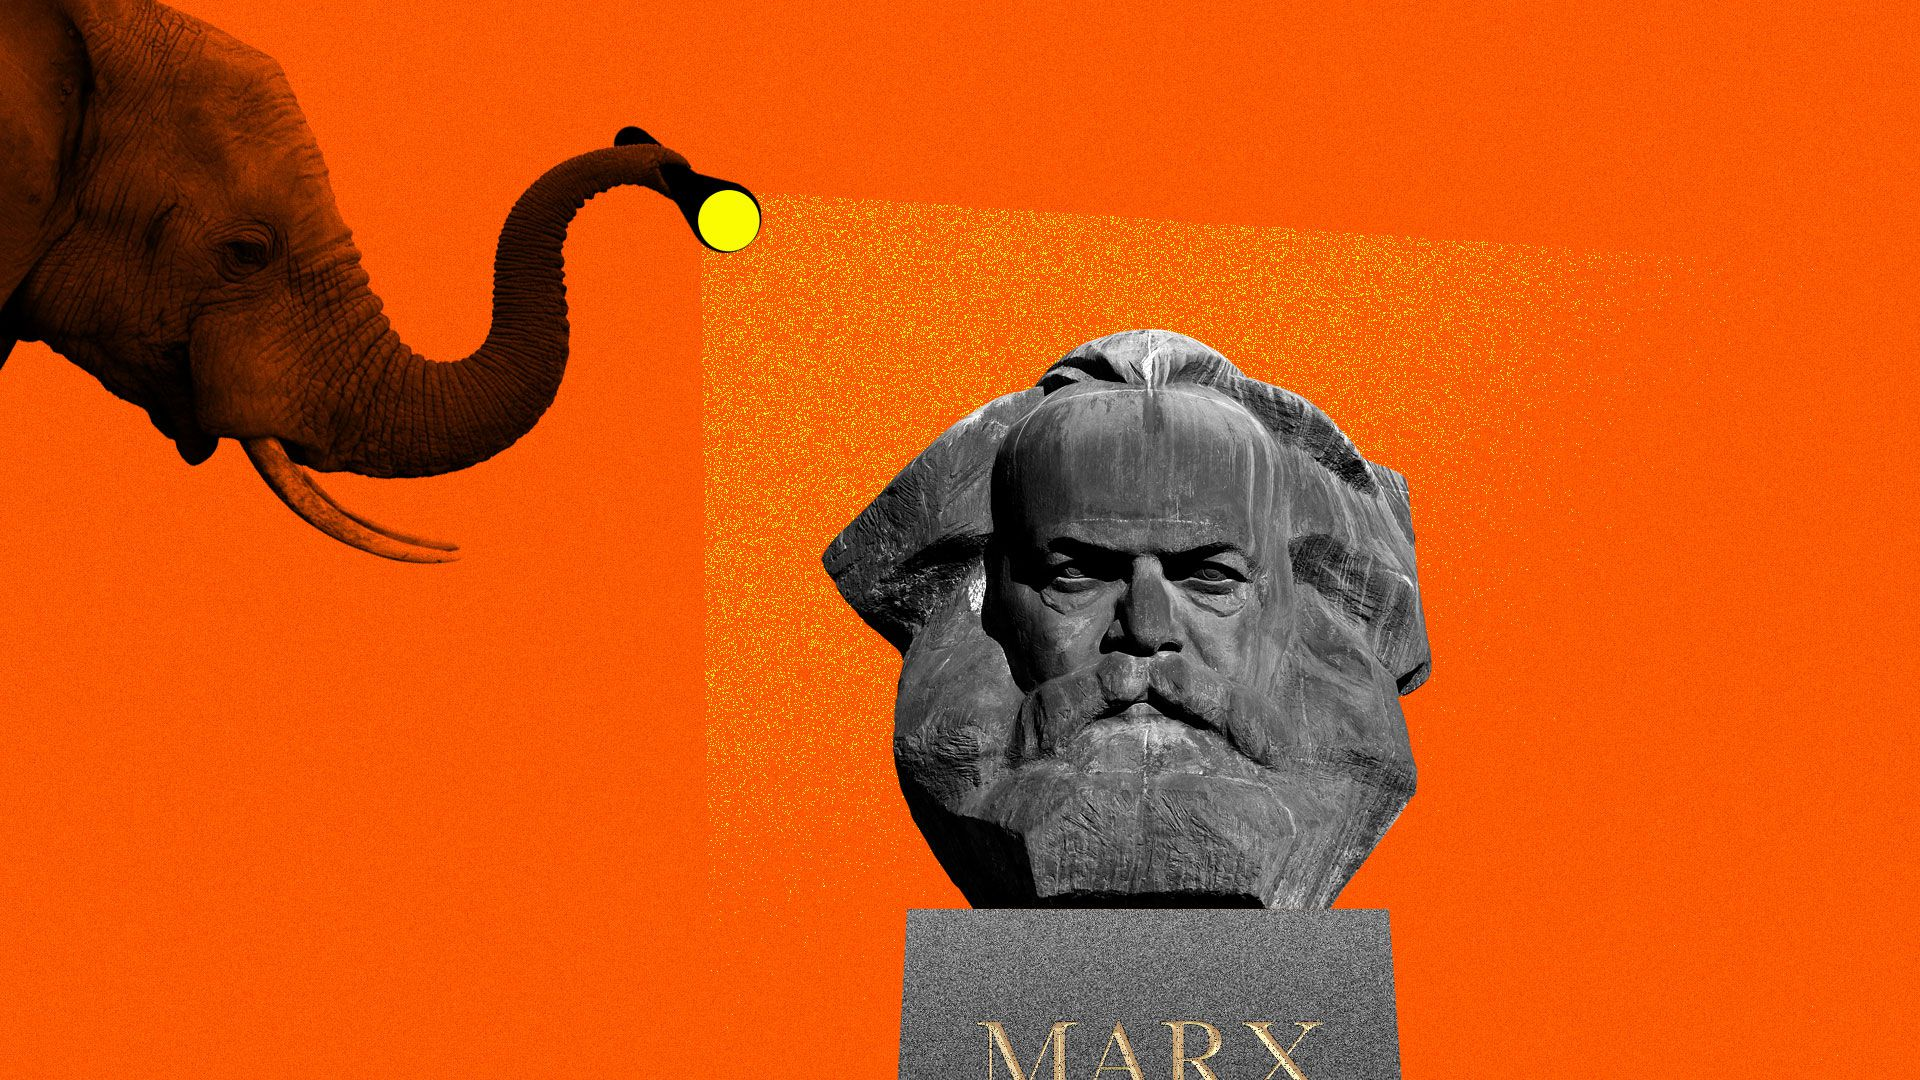 An elephant shining a flashlight on a bust of Karl Marx